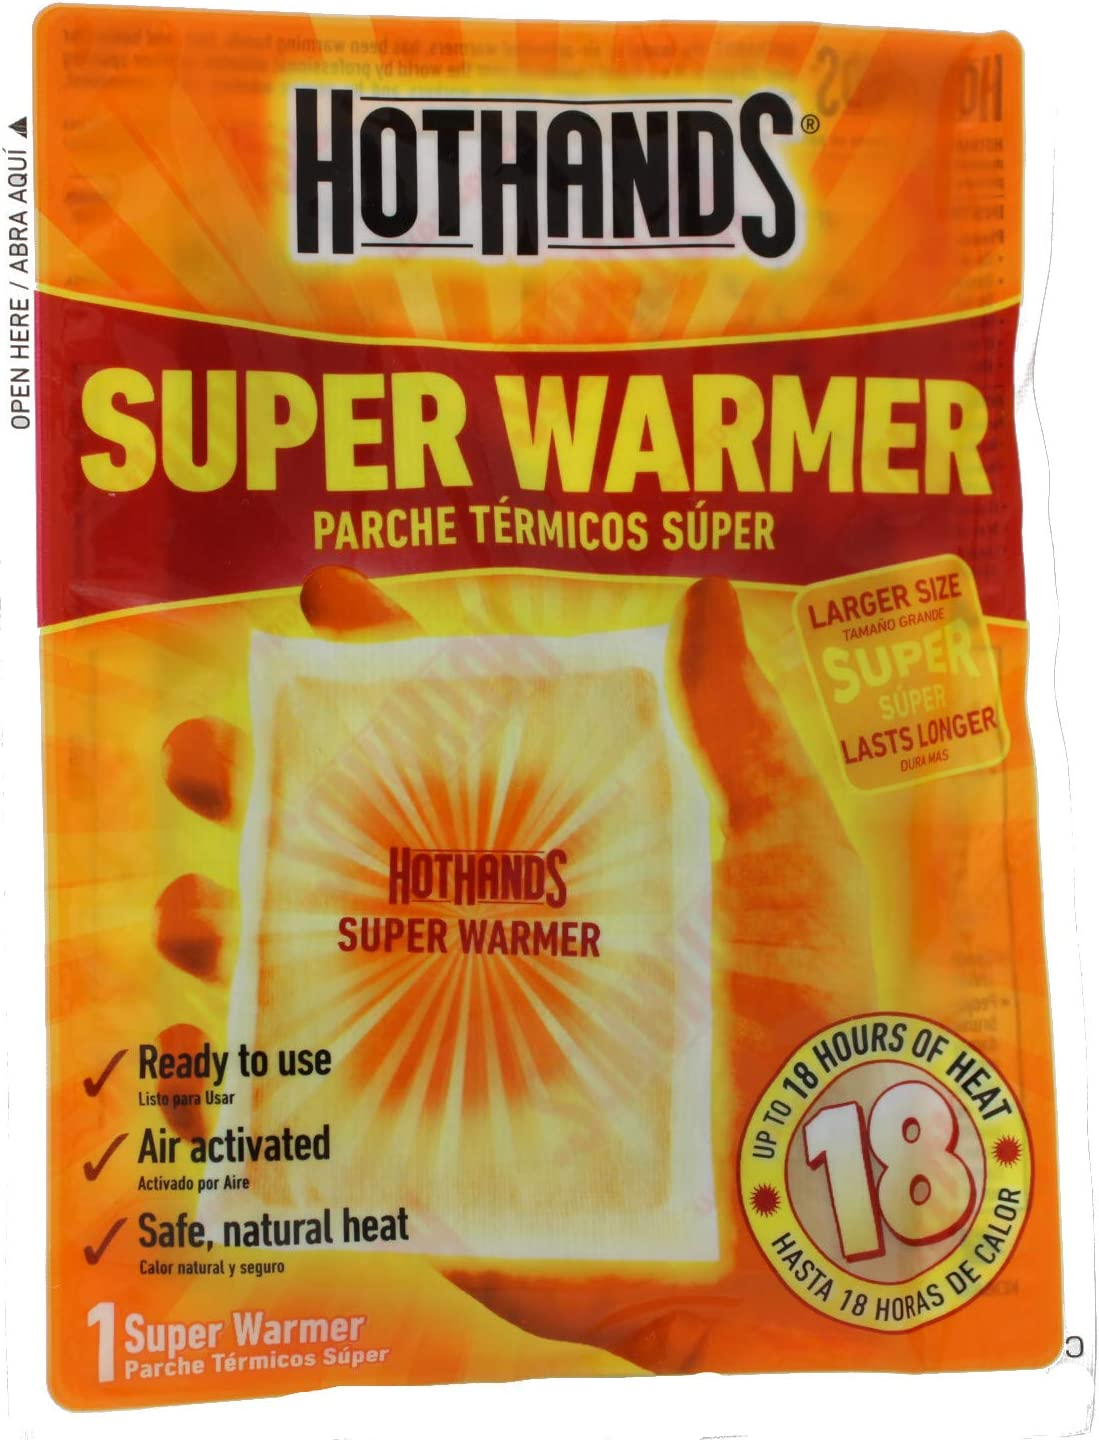 20 count HotHands Body /& Hand Super Warmers 18 Hours  New Super Size Package